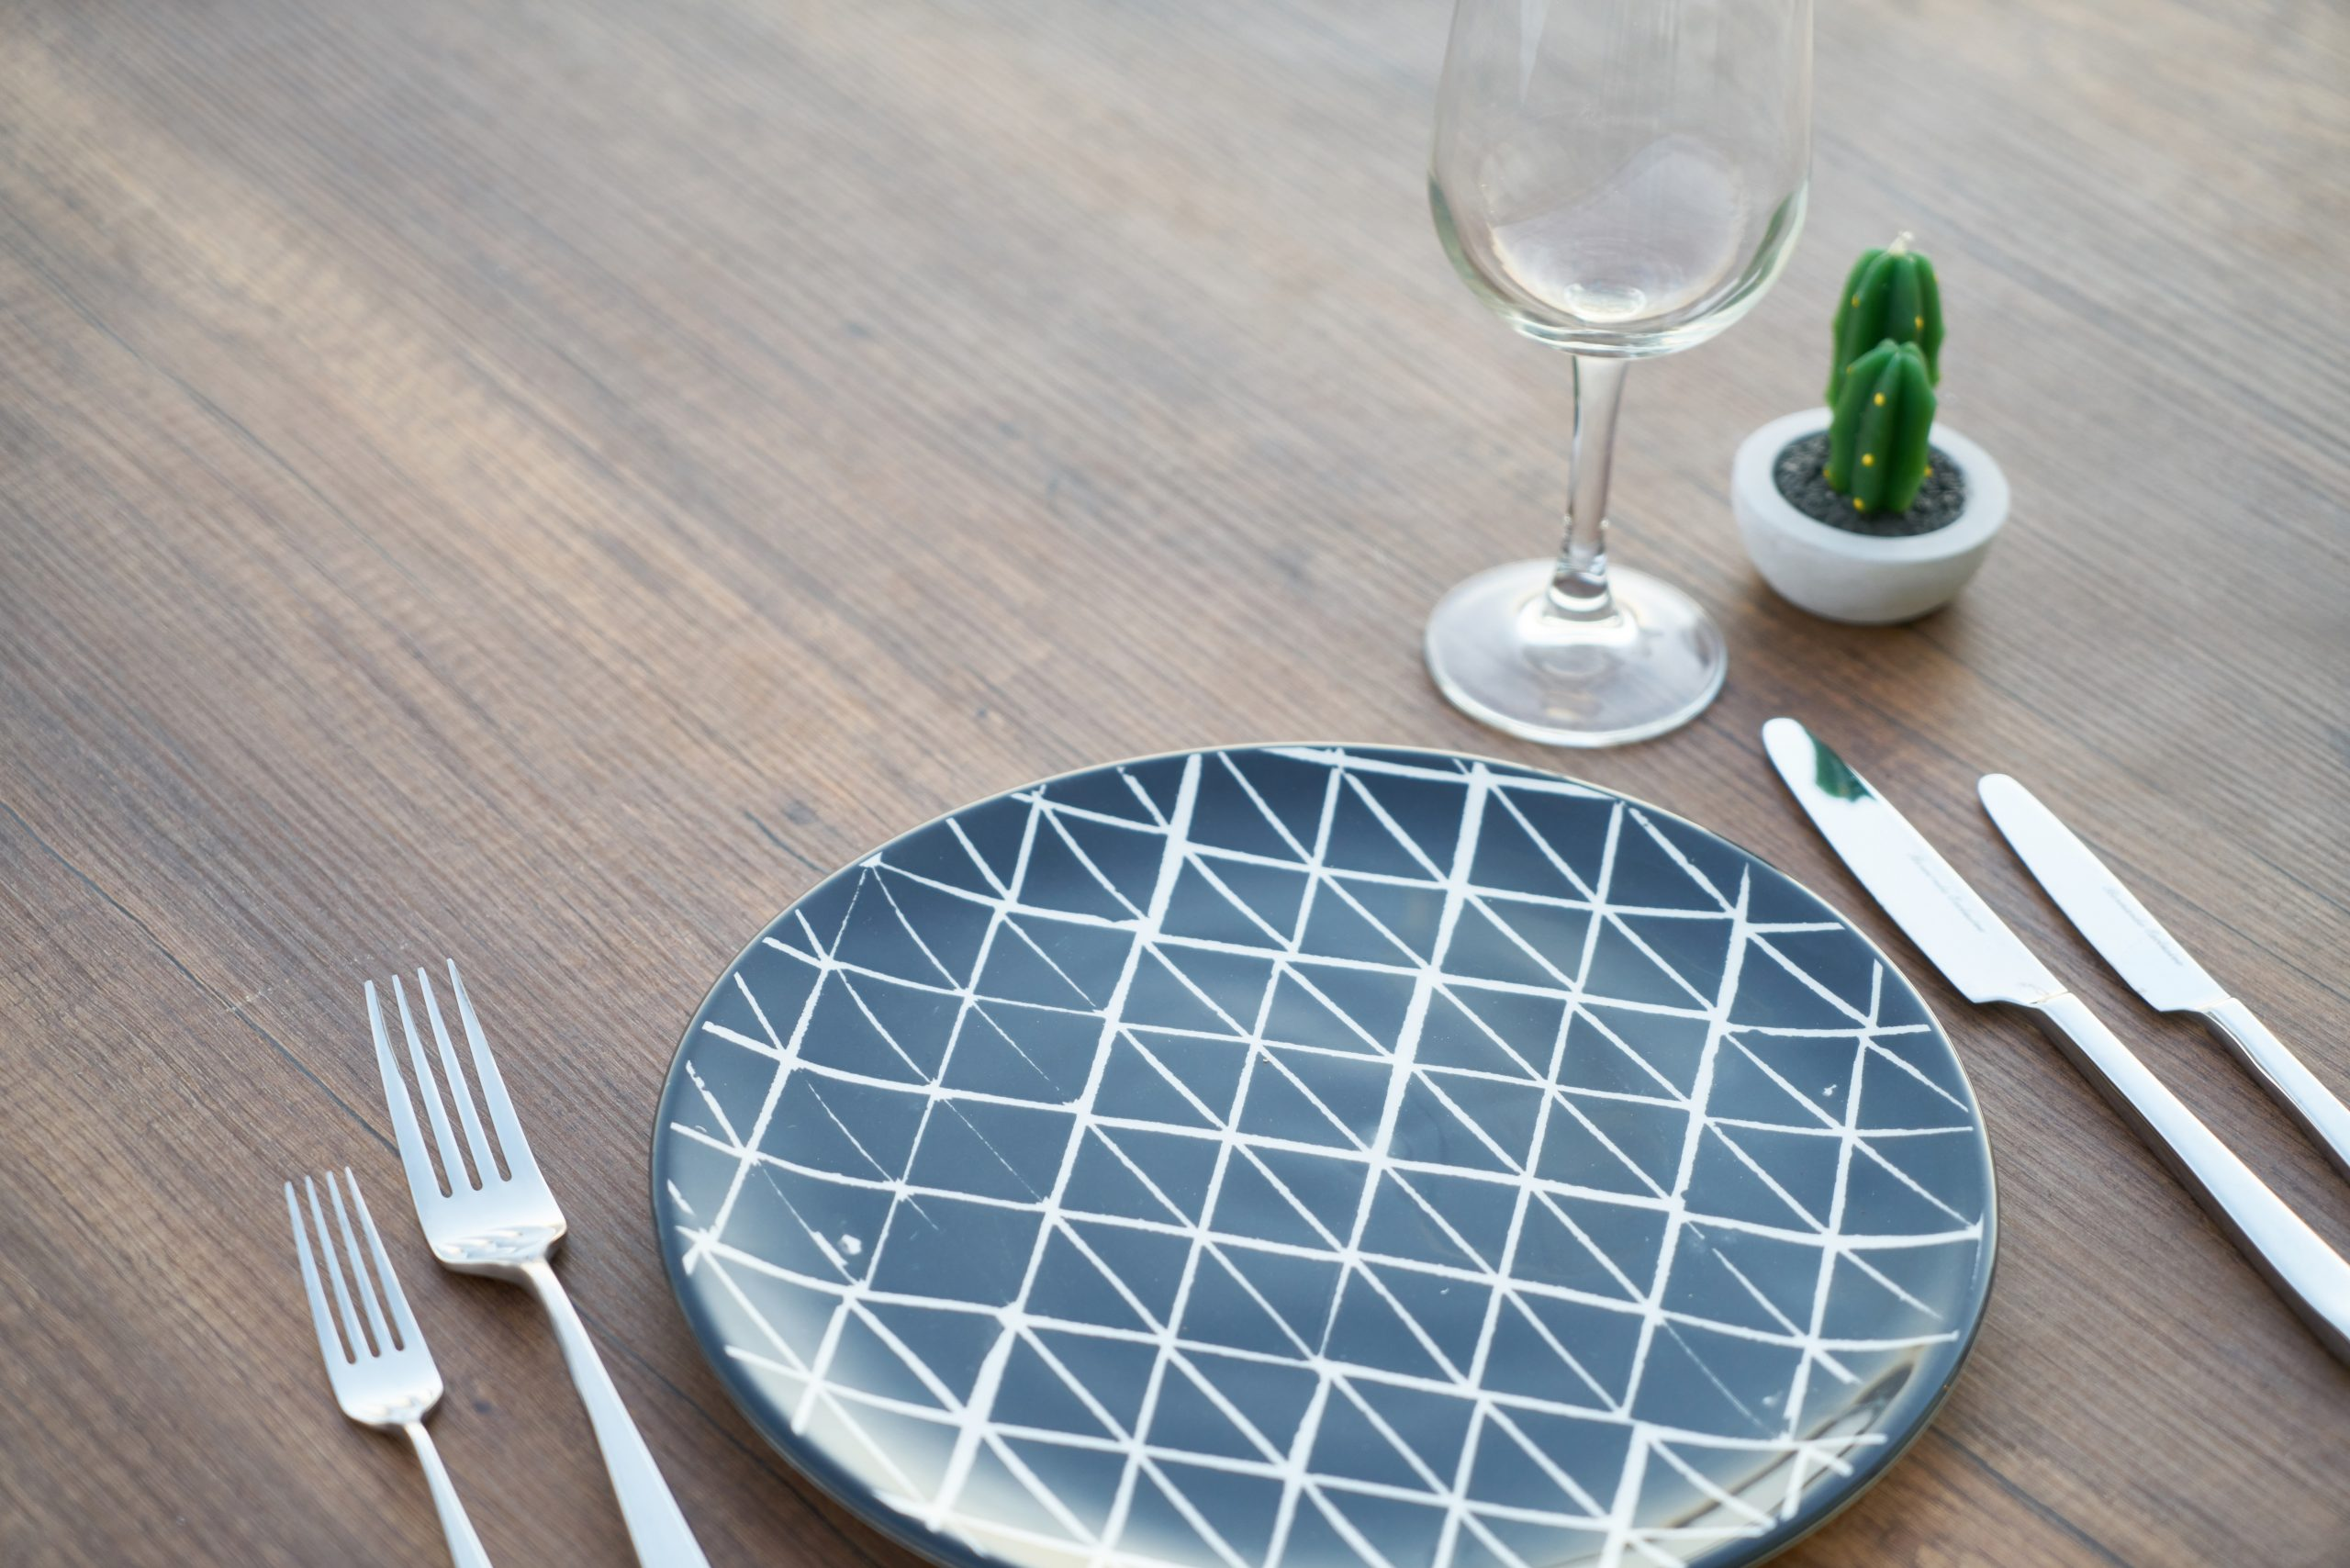 plate on the table